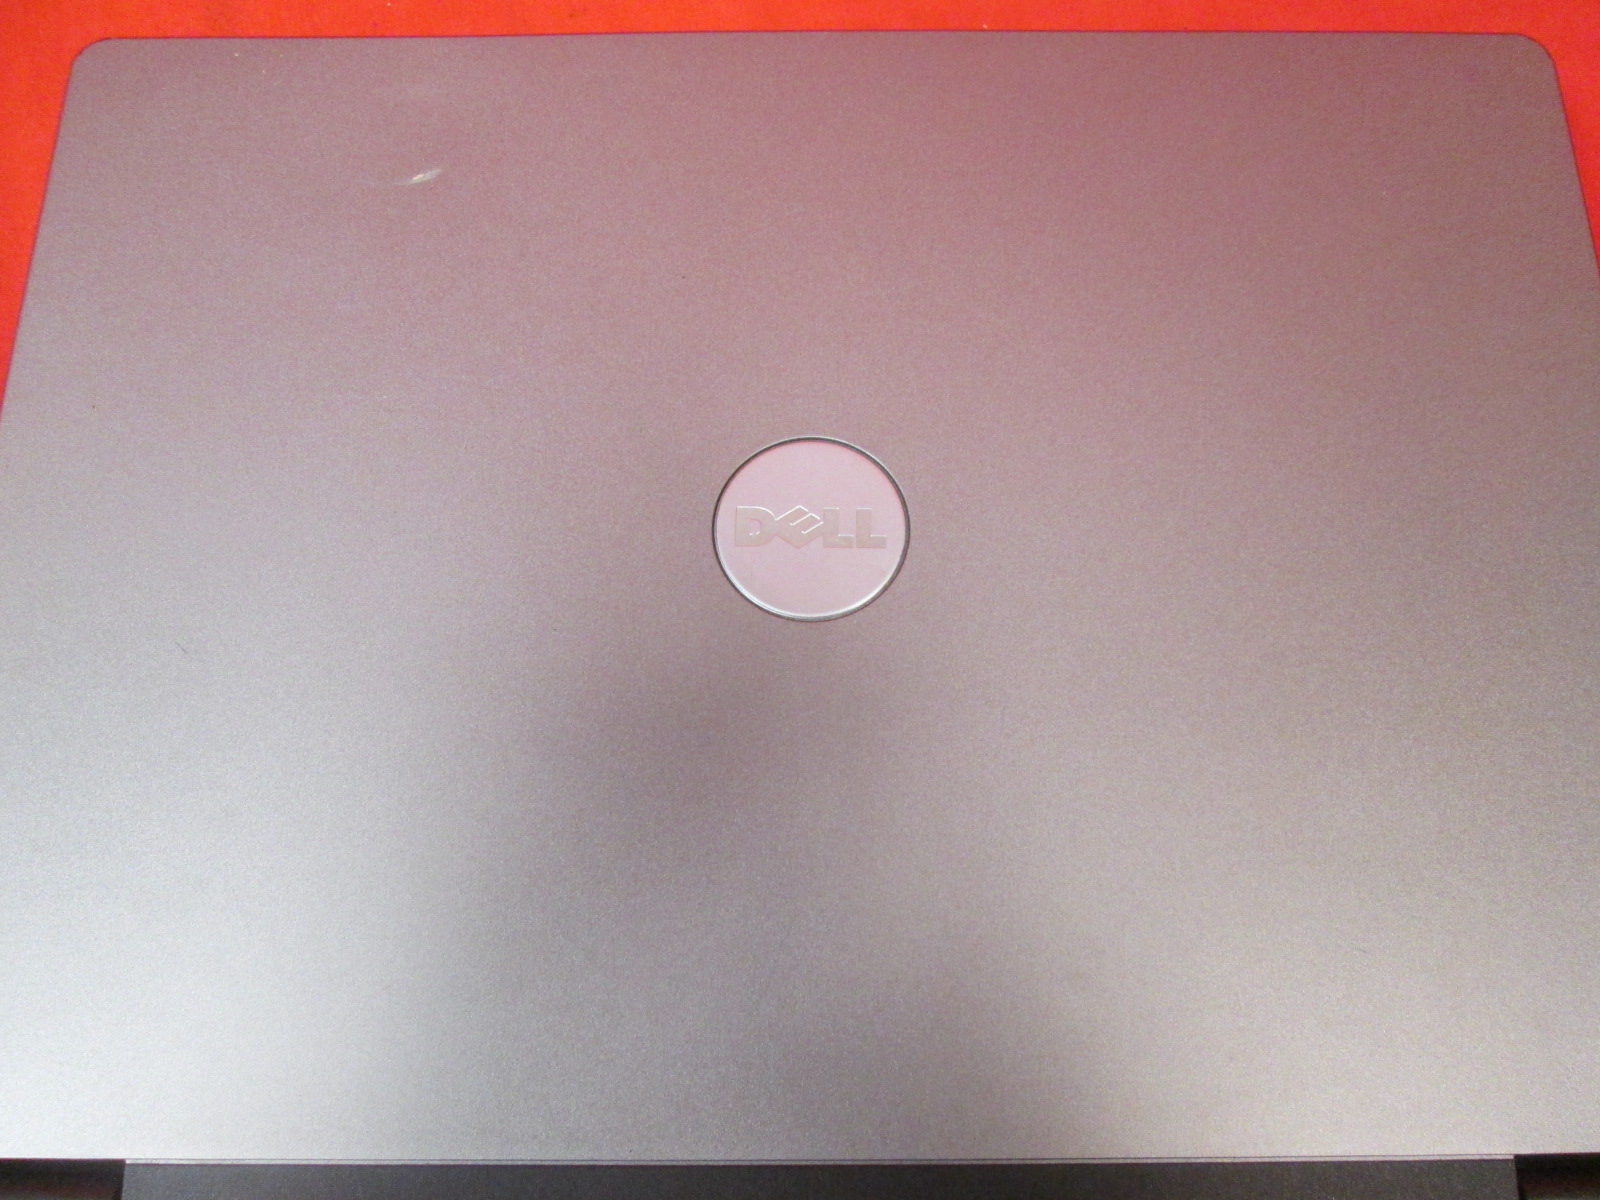 Broken Dell Inspiron B120 14.1 Notebook